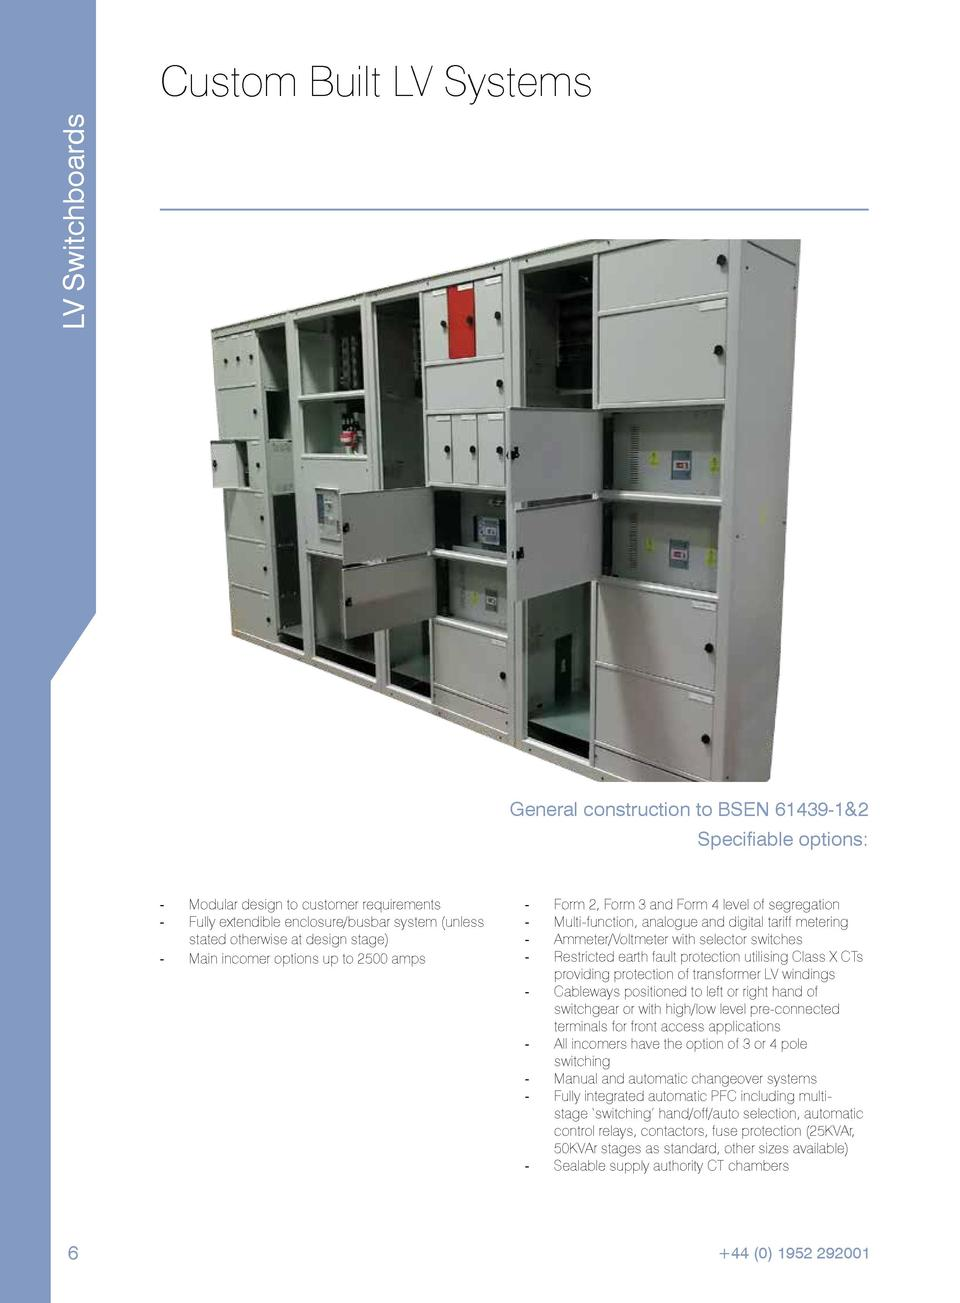 LV Switchboards  Custom Built LV Systems  General construction to BSEN 61439-1 2 Specifiable options  ----  Modular design...